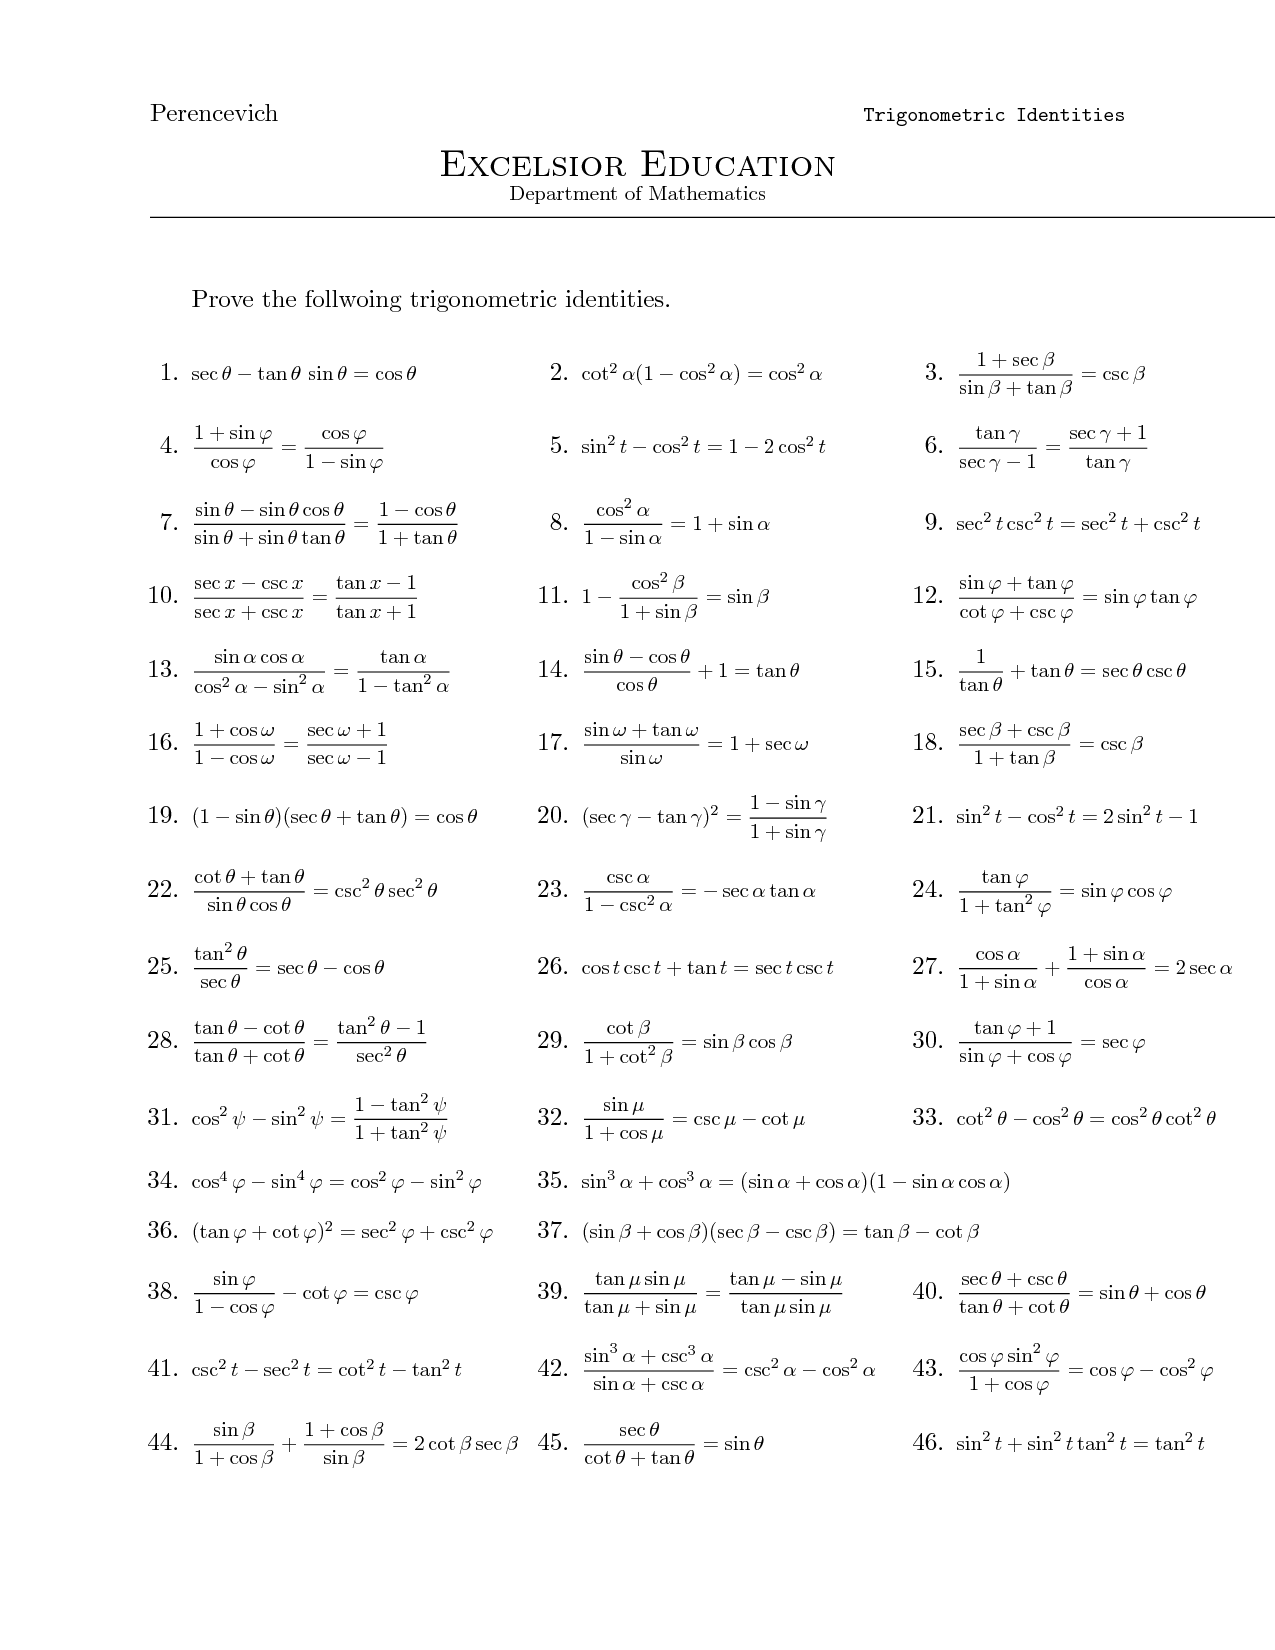 Printables Trig Identity Worksheet song trigonometry trig identities uptown funky simplify identity problems